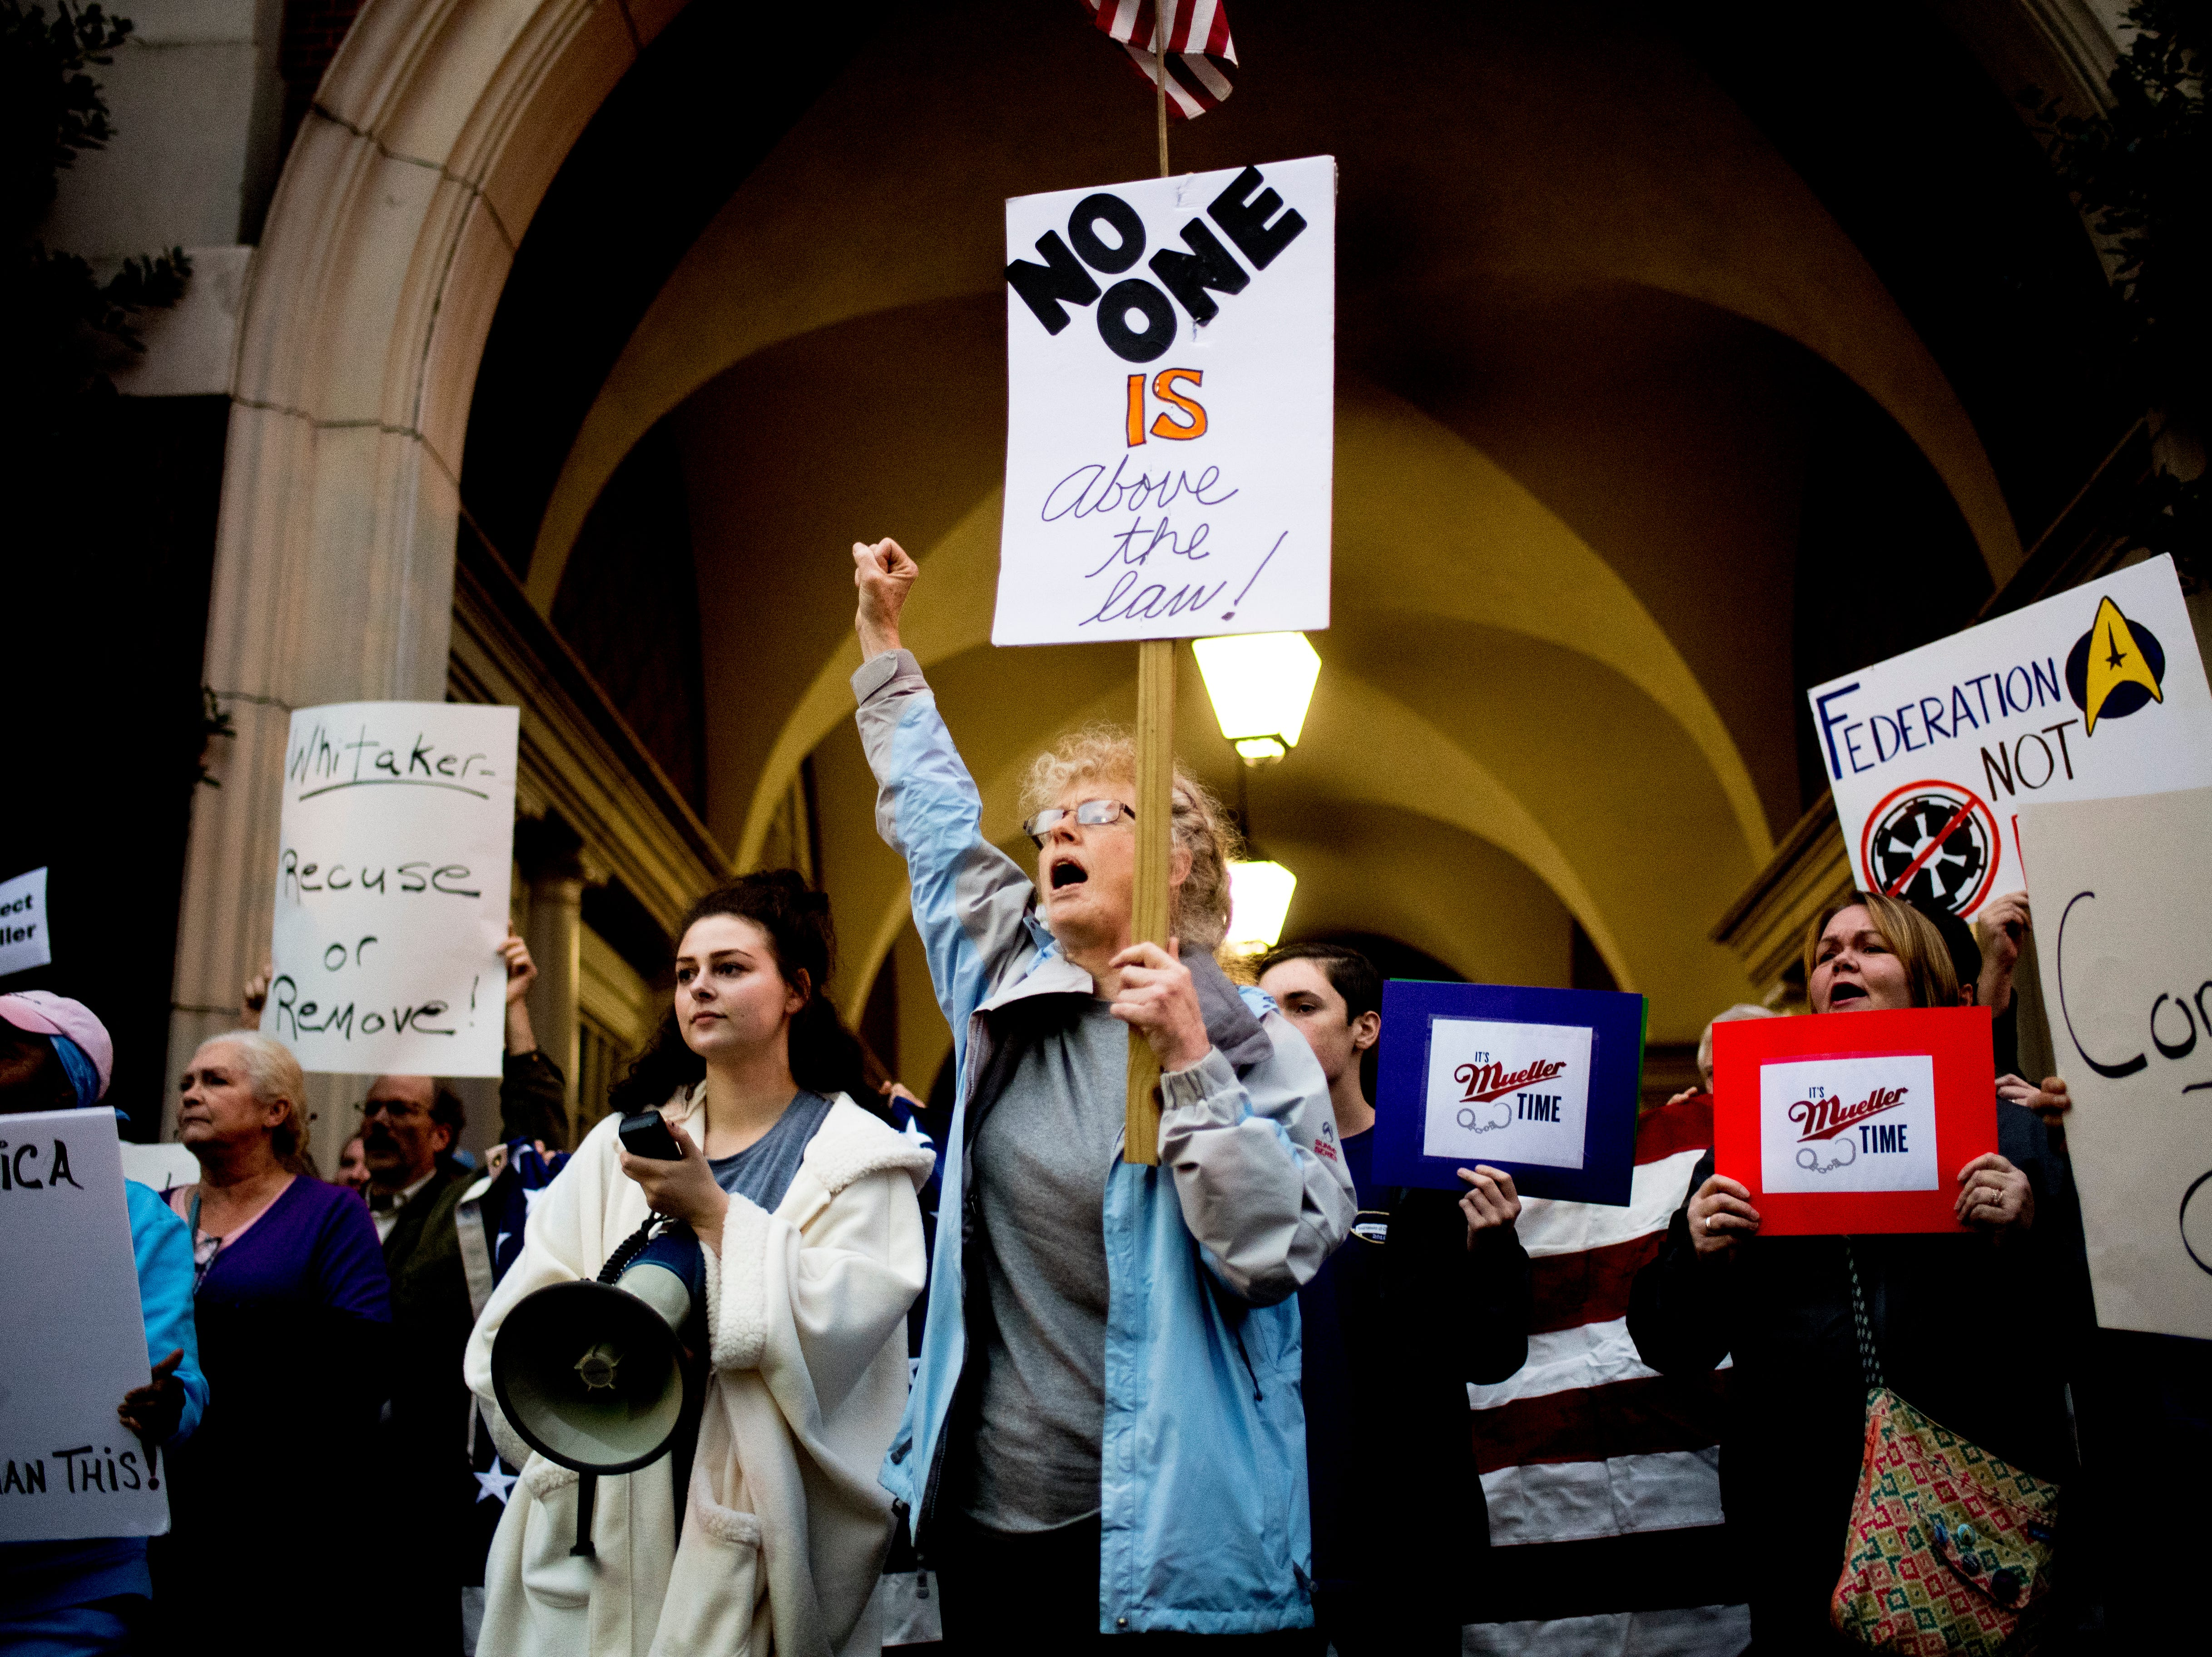 Linda Sharp, center, and her granddaughter Tori Sharp, both of Maryville, chant during a protest against the firing of United States Attorney General Jeff Sessions outside of the Federal Courthouse in Knoxville, Tennessee on Thursday, November 8, 2018.